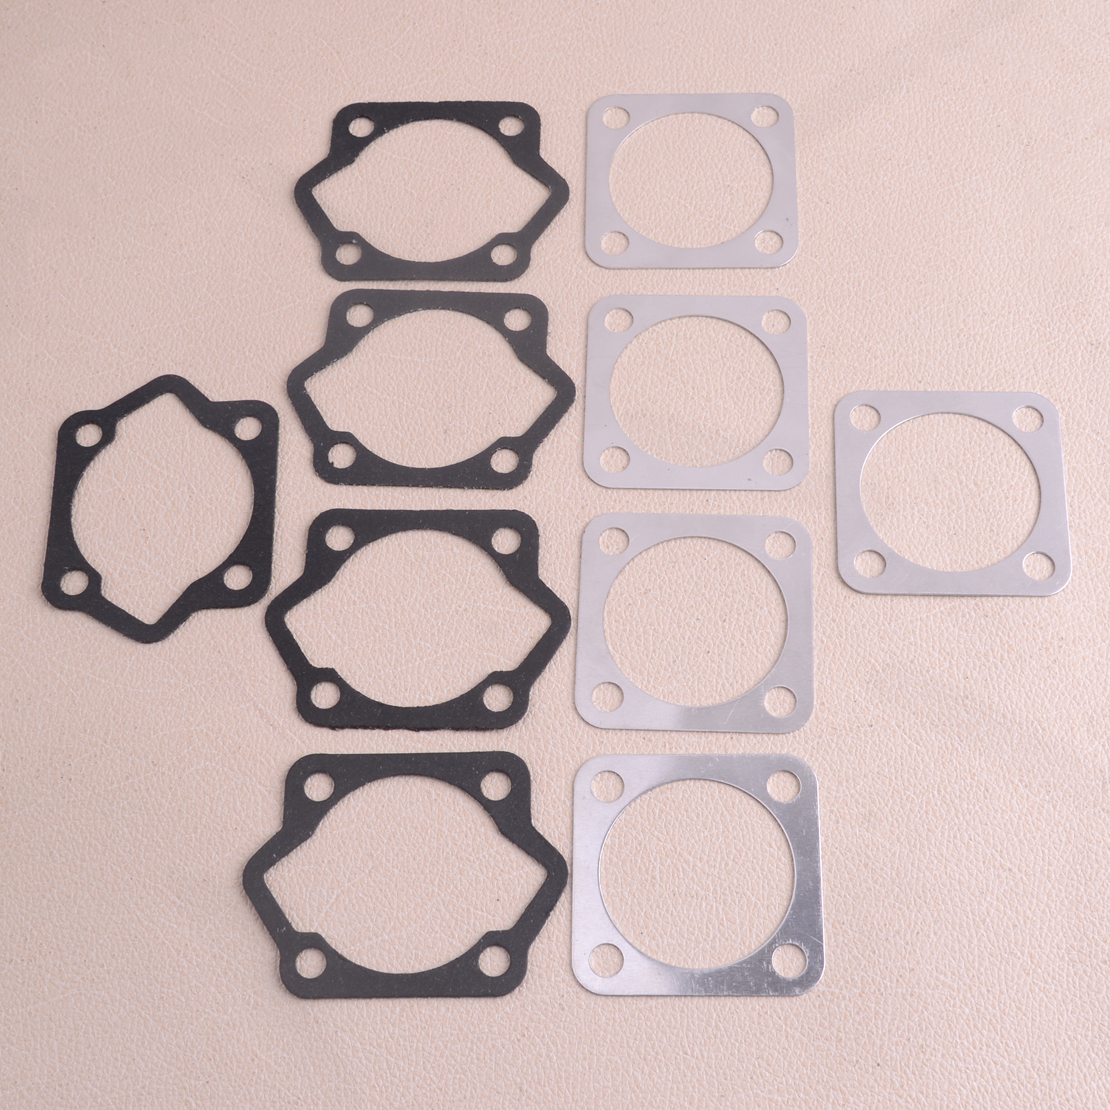 LETAOSK New 5 Sets 47mm Cylinder Head Bottom Engine Gasket Kit For 2 Stroke 80cc Motorized Bicycle